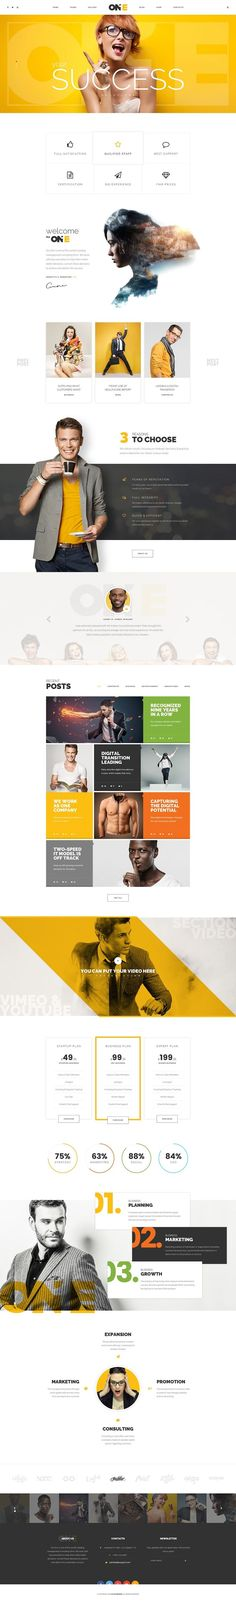 Best of WordPress 2016 More